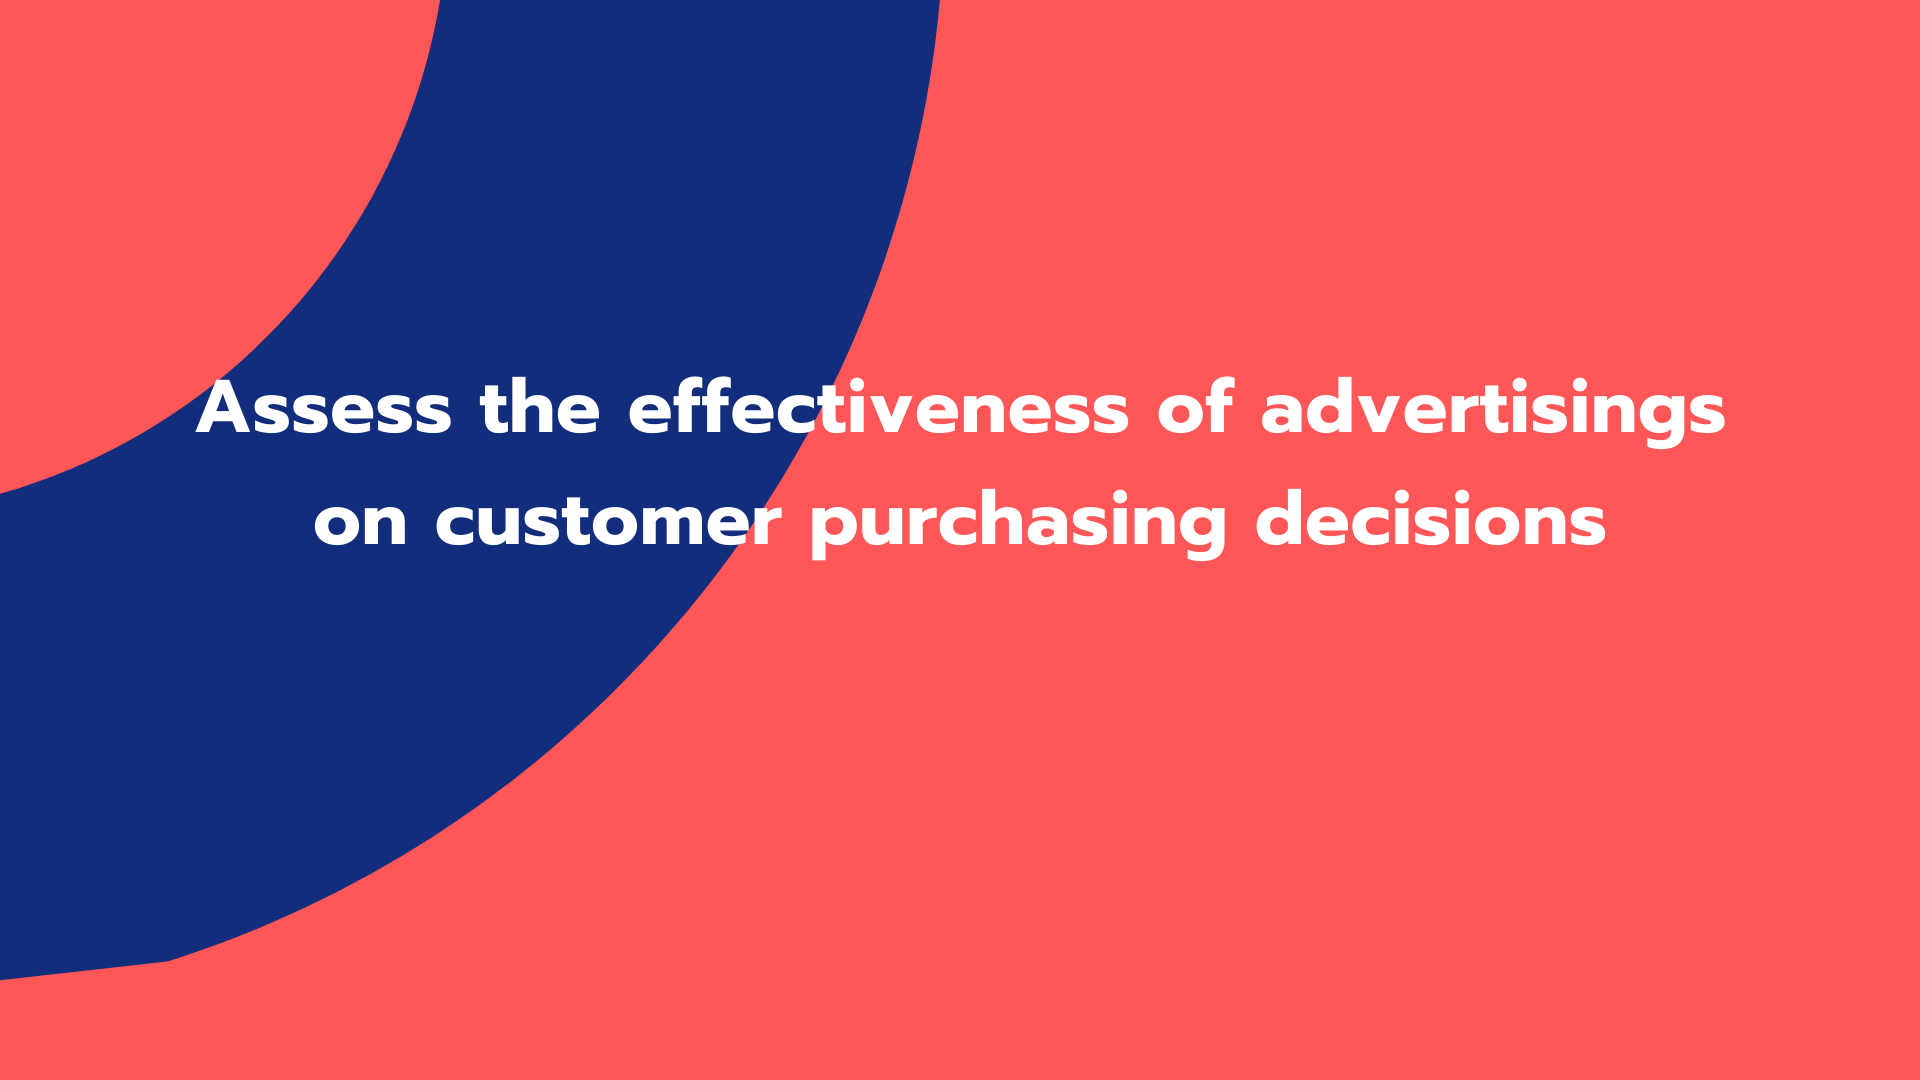 Assess the effectiveness of advertisings on customer purchasing decisions